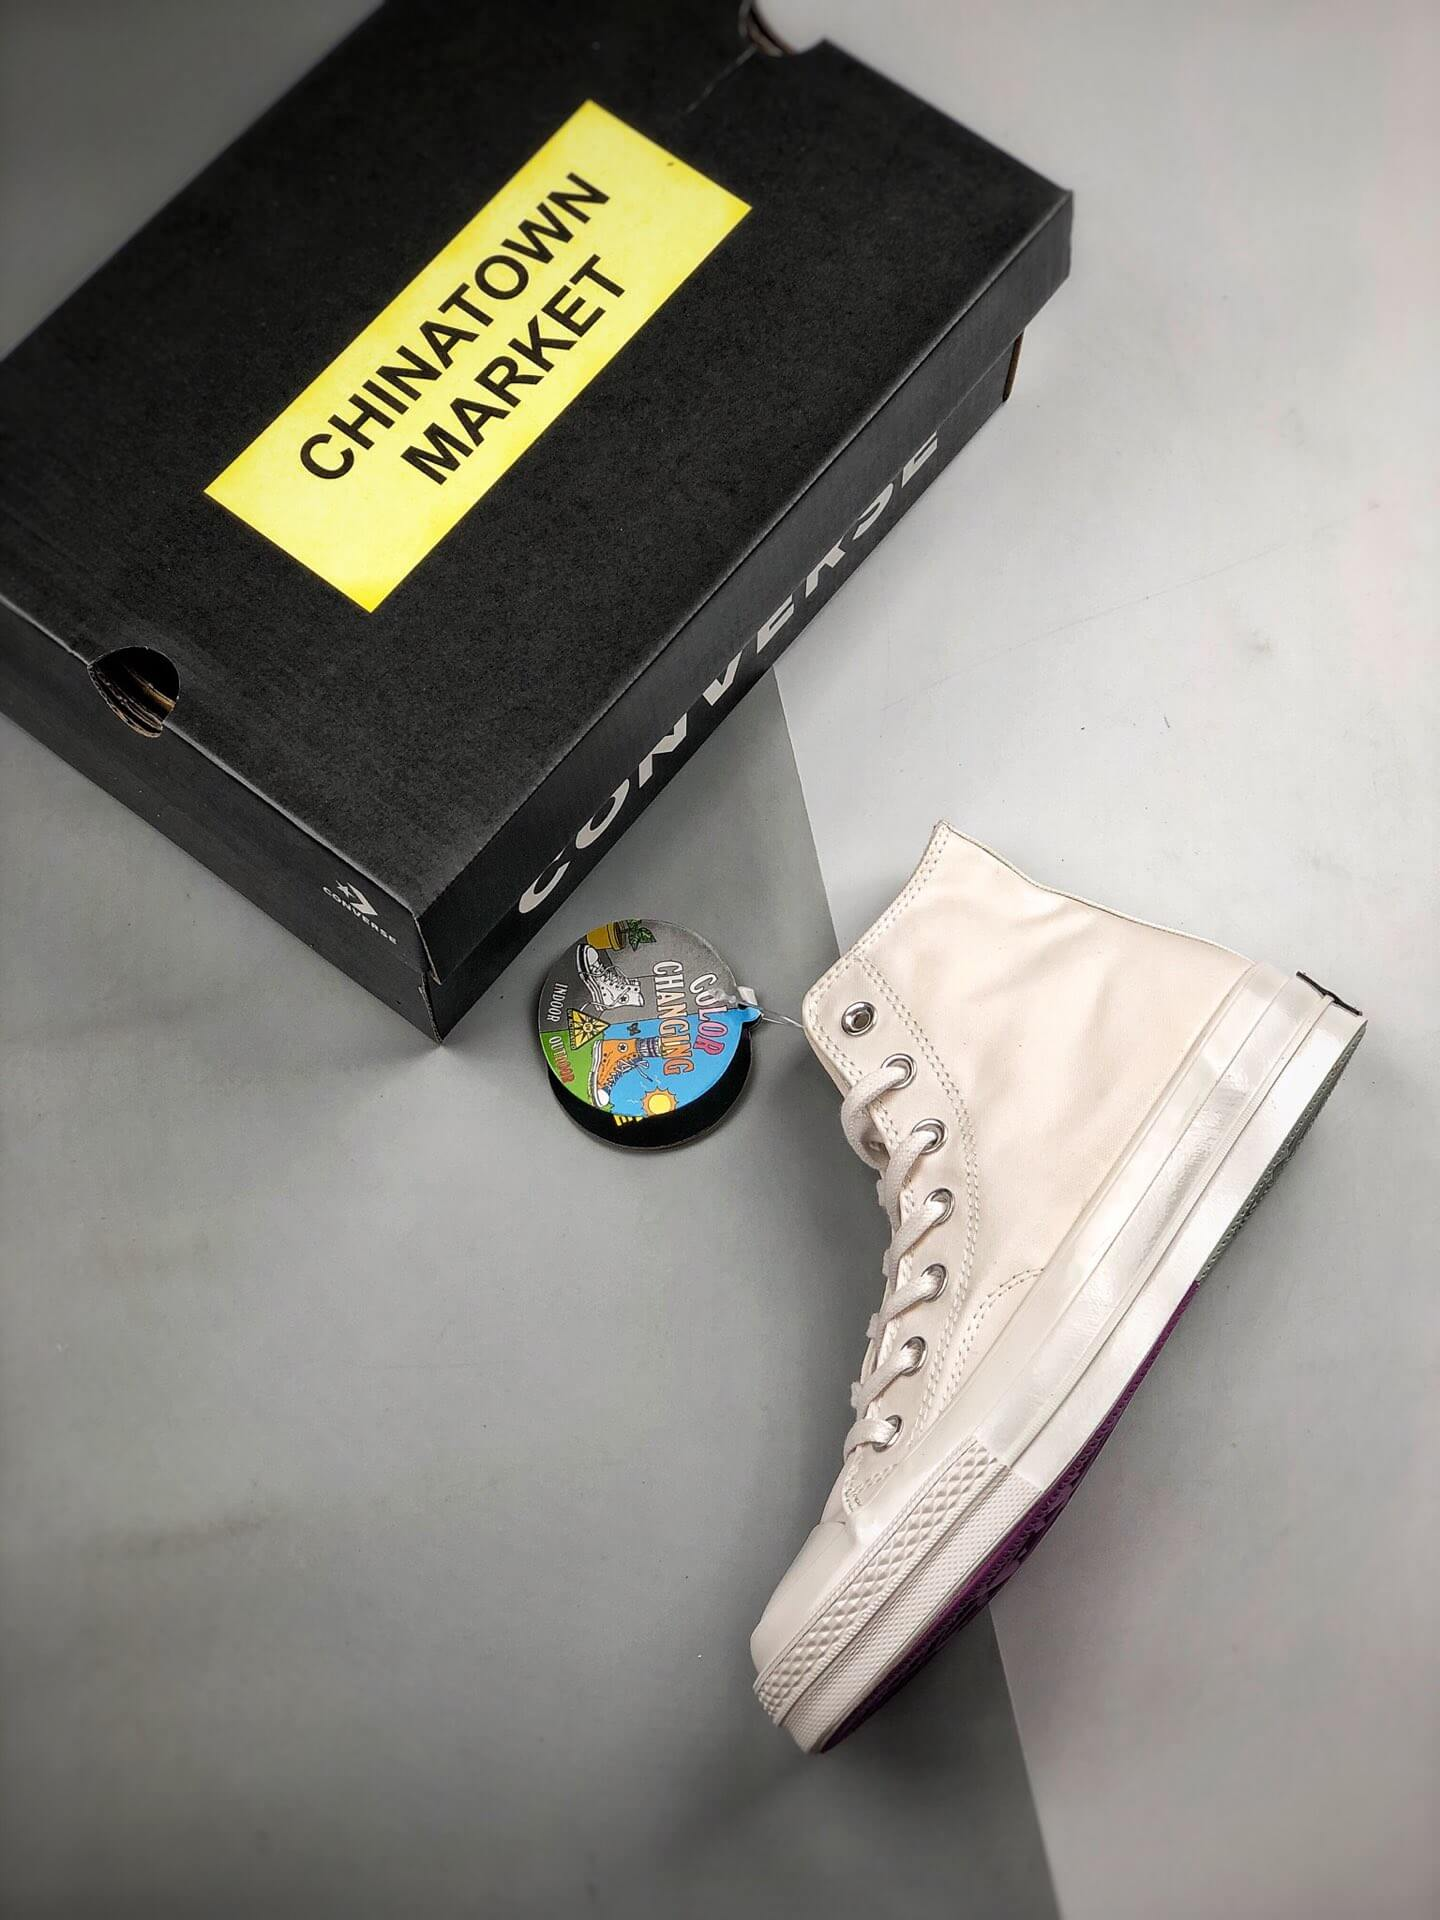 The Converse Chinatown Market x Chuck 70 High UV Lifestyle RepShoes 09